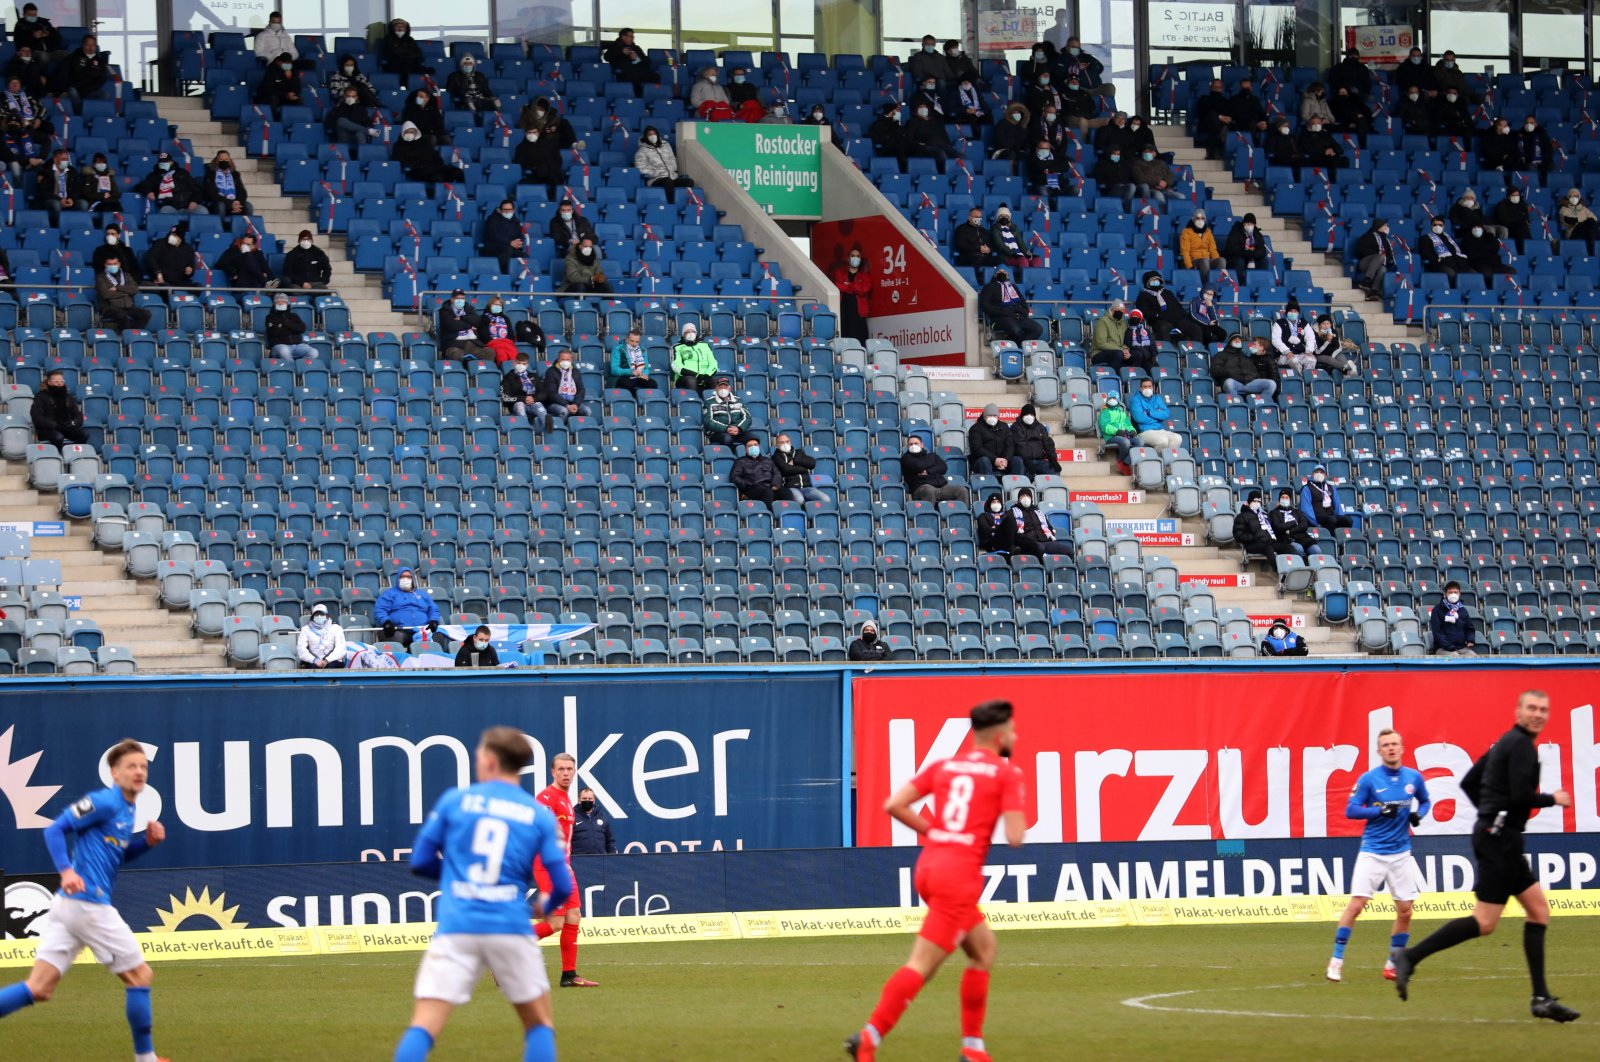 General view during the match between Hansa Rostock and Hallescher FC as fans are allowed to return to the stadium following the outbreak of the coronavirus disease (COVID-19), Rostock, Germany, March 20, 2021. (Reuters Photo)